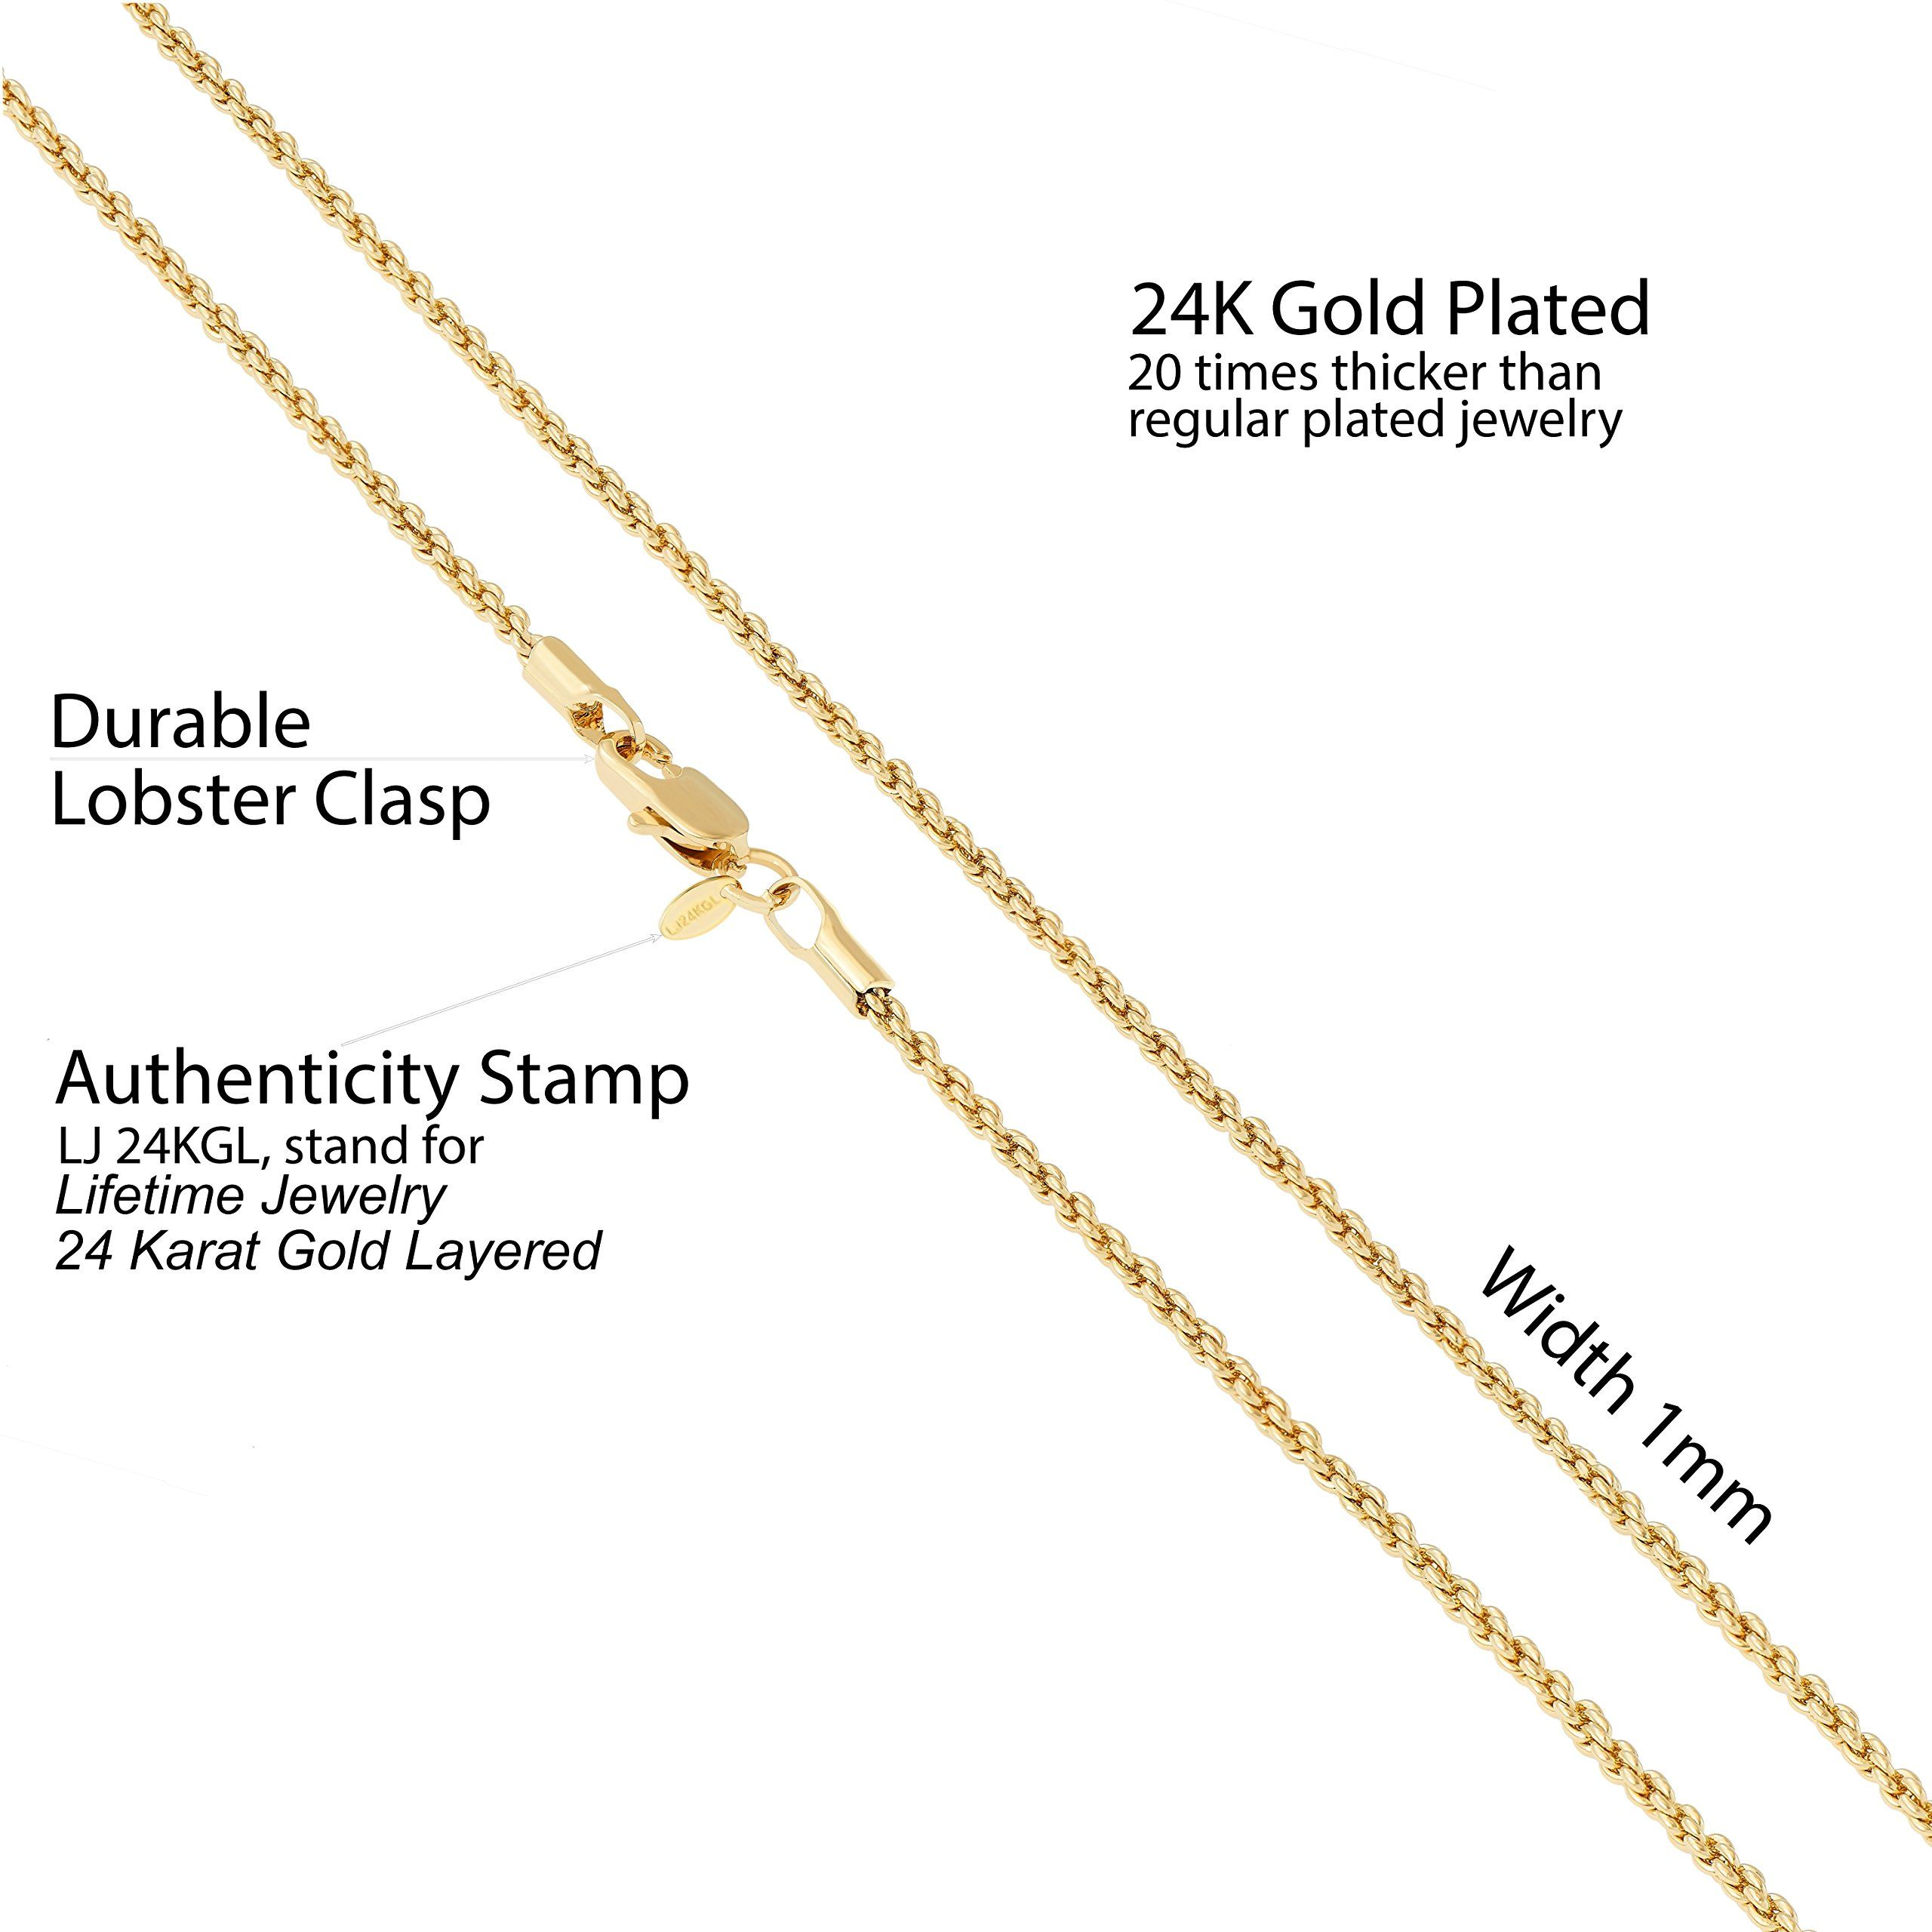 Rope Chain 1mm 24k Gold Overlay Premium Fashion Jewelry Short Choker Pendant Necklace Made Thin For Charms Guara Jewelry Jewelry Choker Choker Pendant Necklace